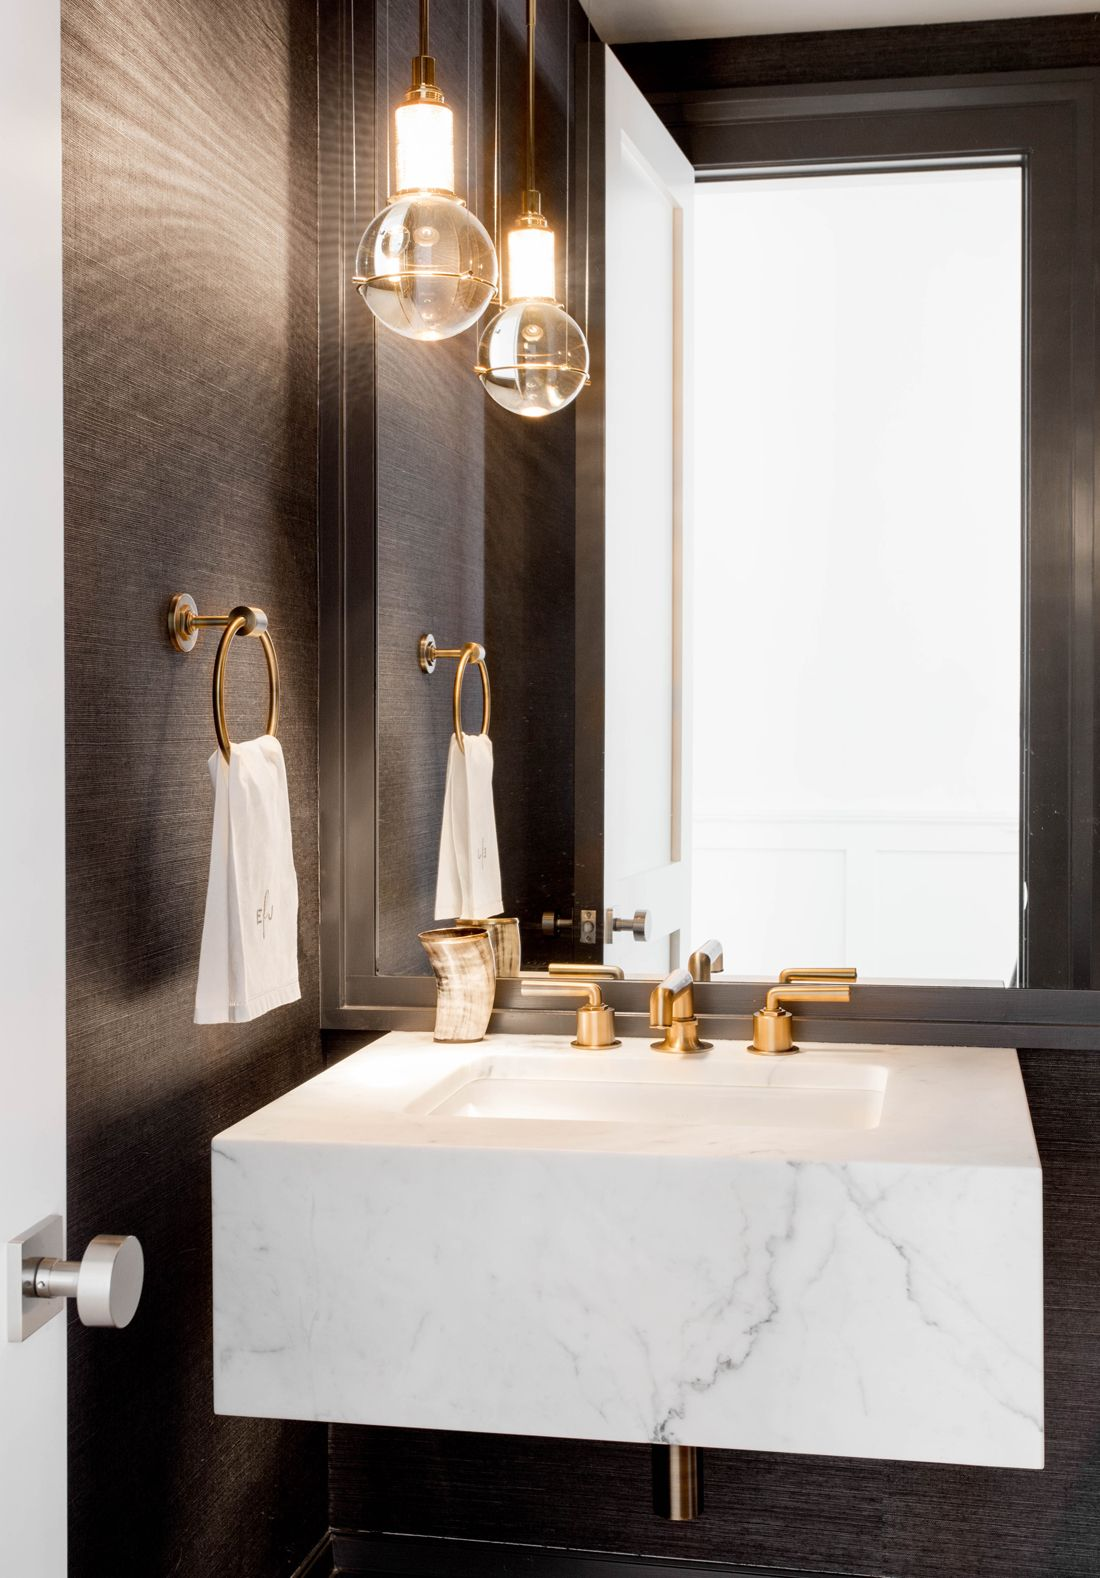 Entspannendes badezimmerdekor dark powder room by tamara magel  dpages  bathroom  pinterest